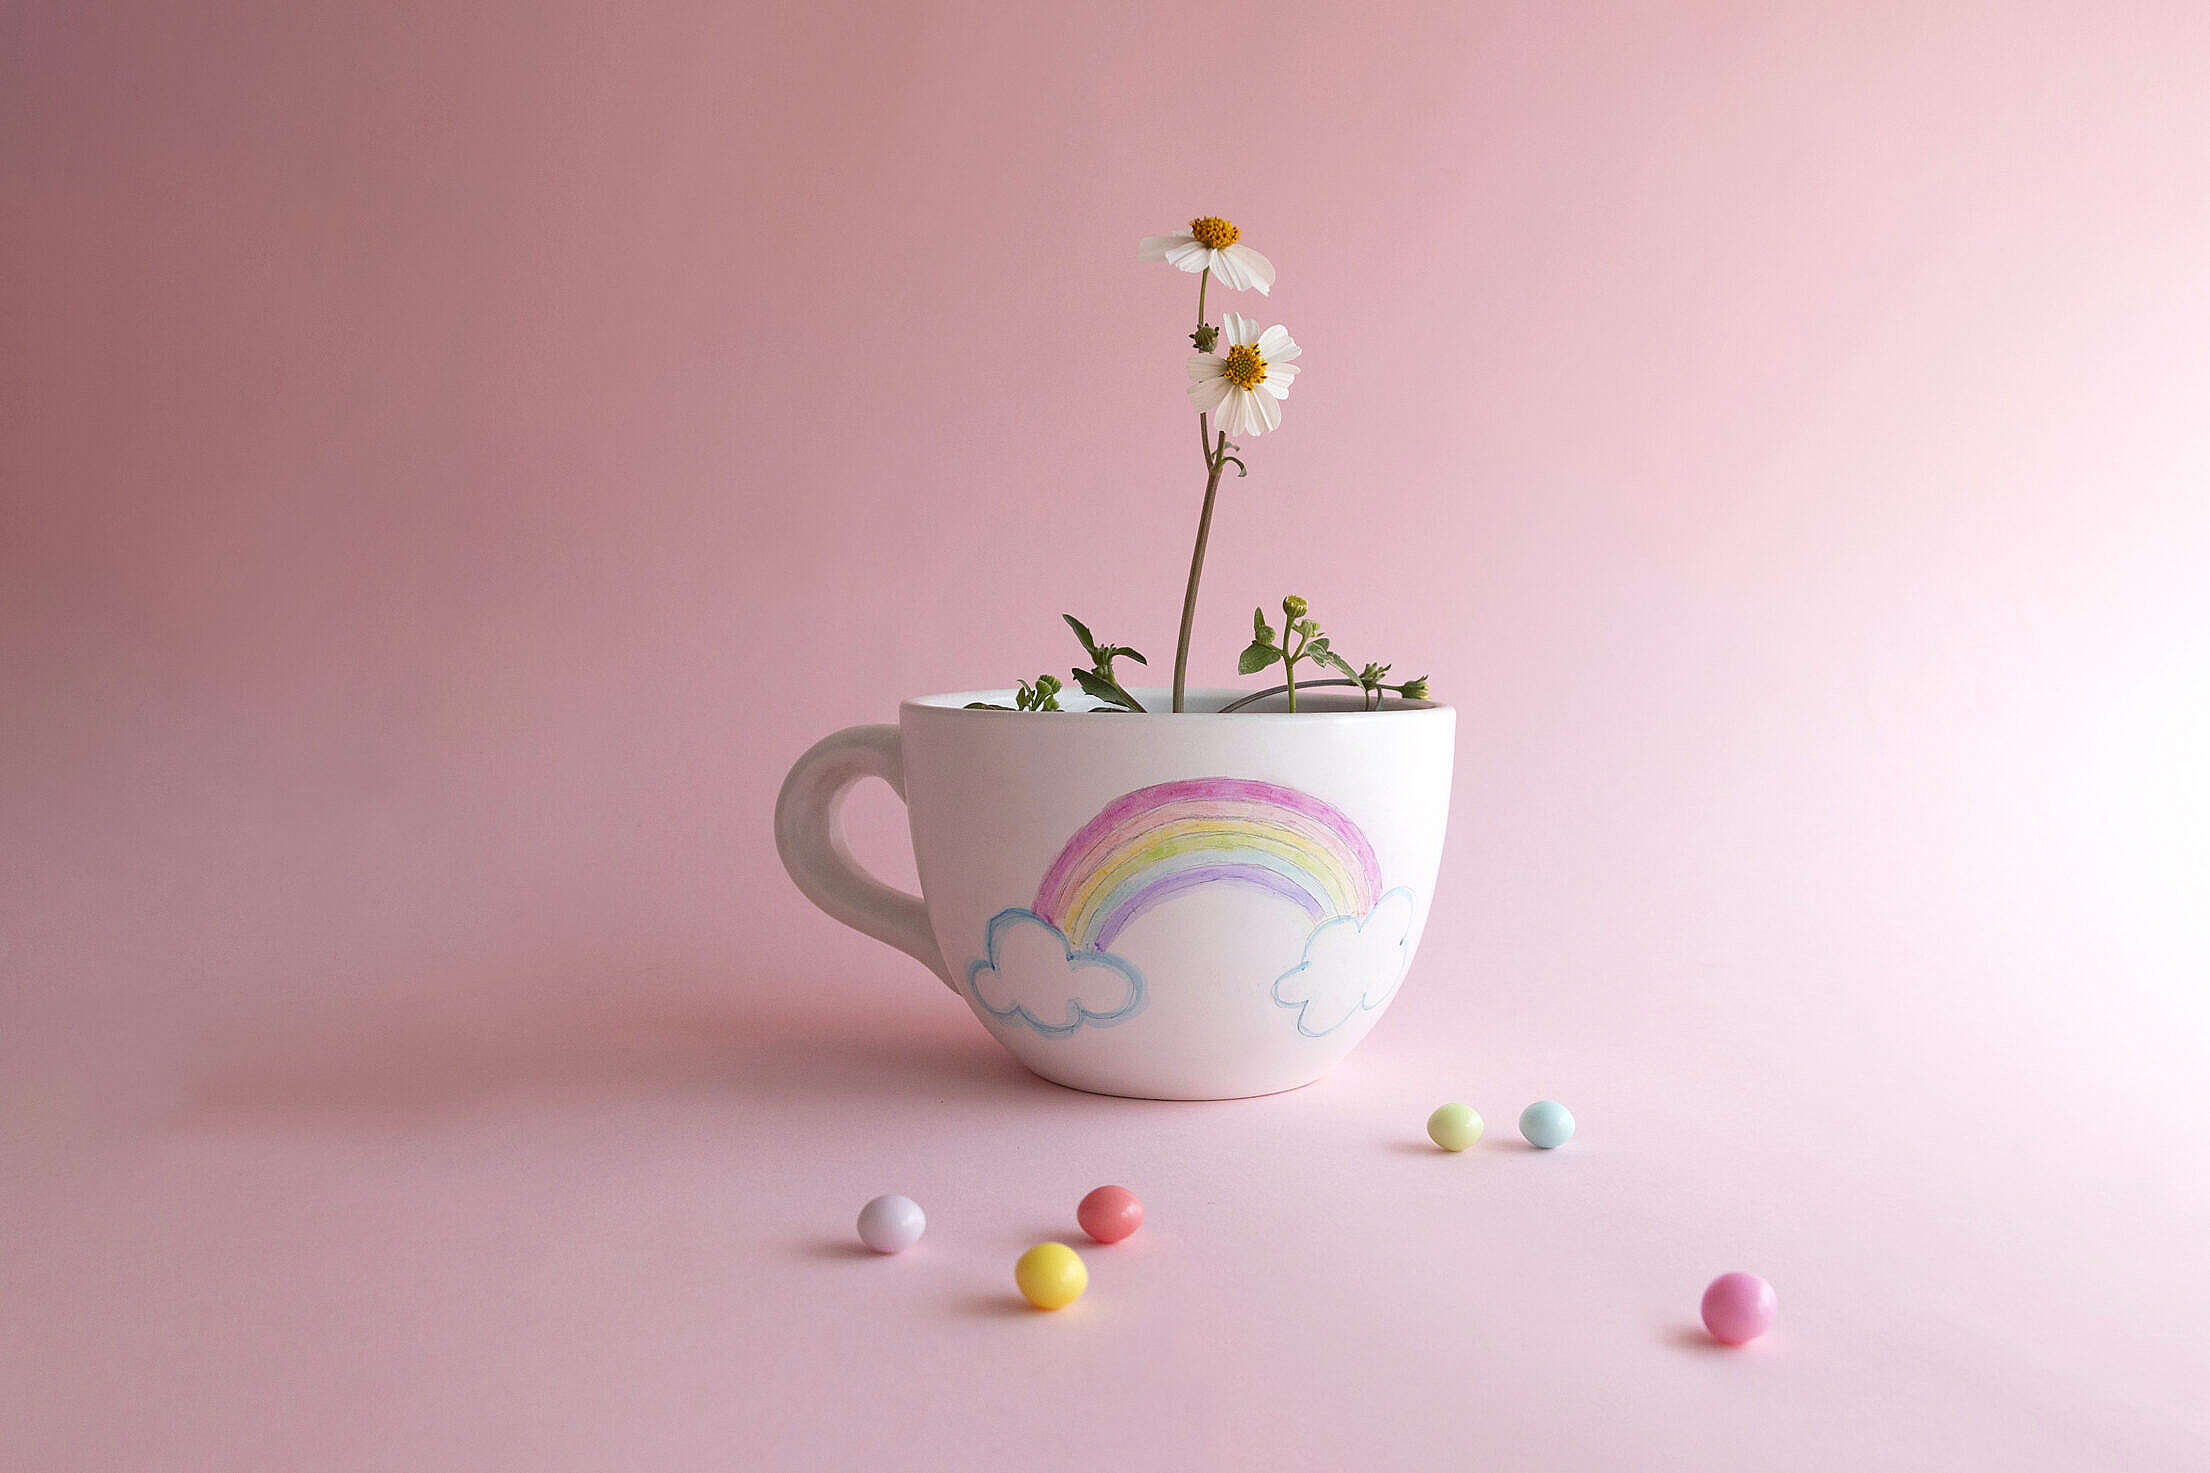 Cute Rainbow Cup with Flower Inside Free Stock Photo